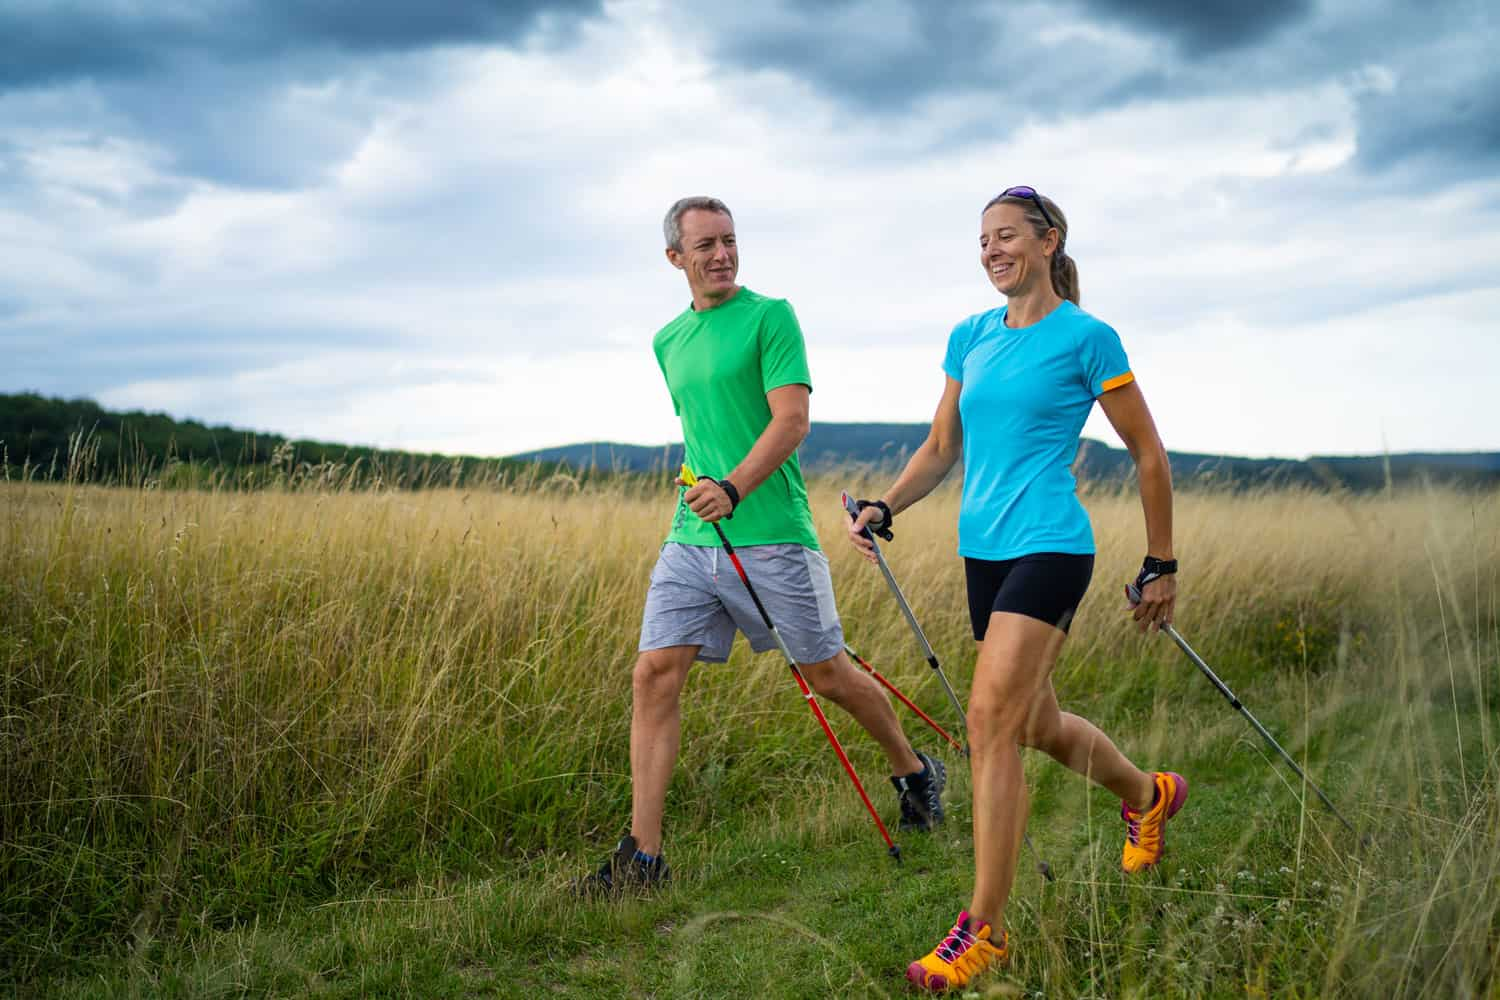 active smiling middle aged couple doing nordic walking sport in grassland with shallow focus cloudy overcast sky dark clouds front view, Does Walking Make Your Legs Bigger or Thicker?